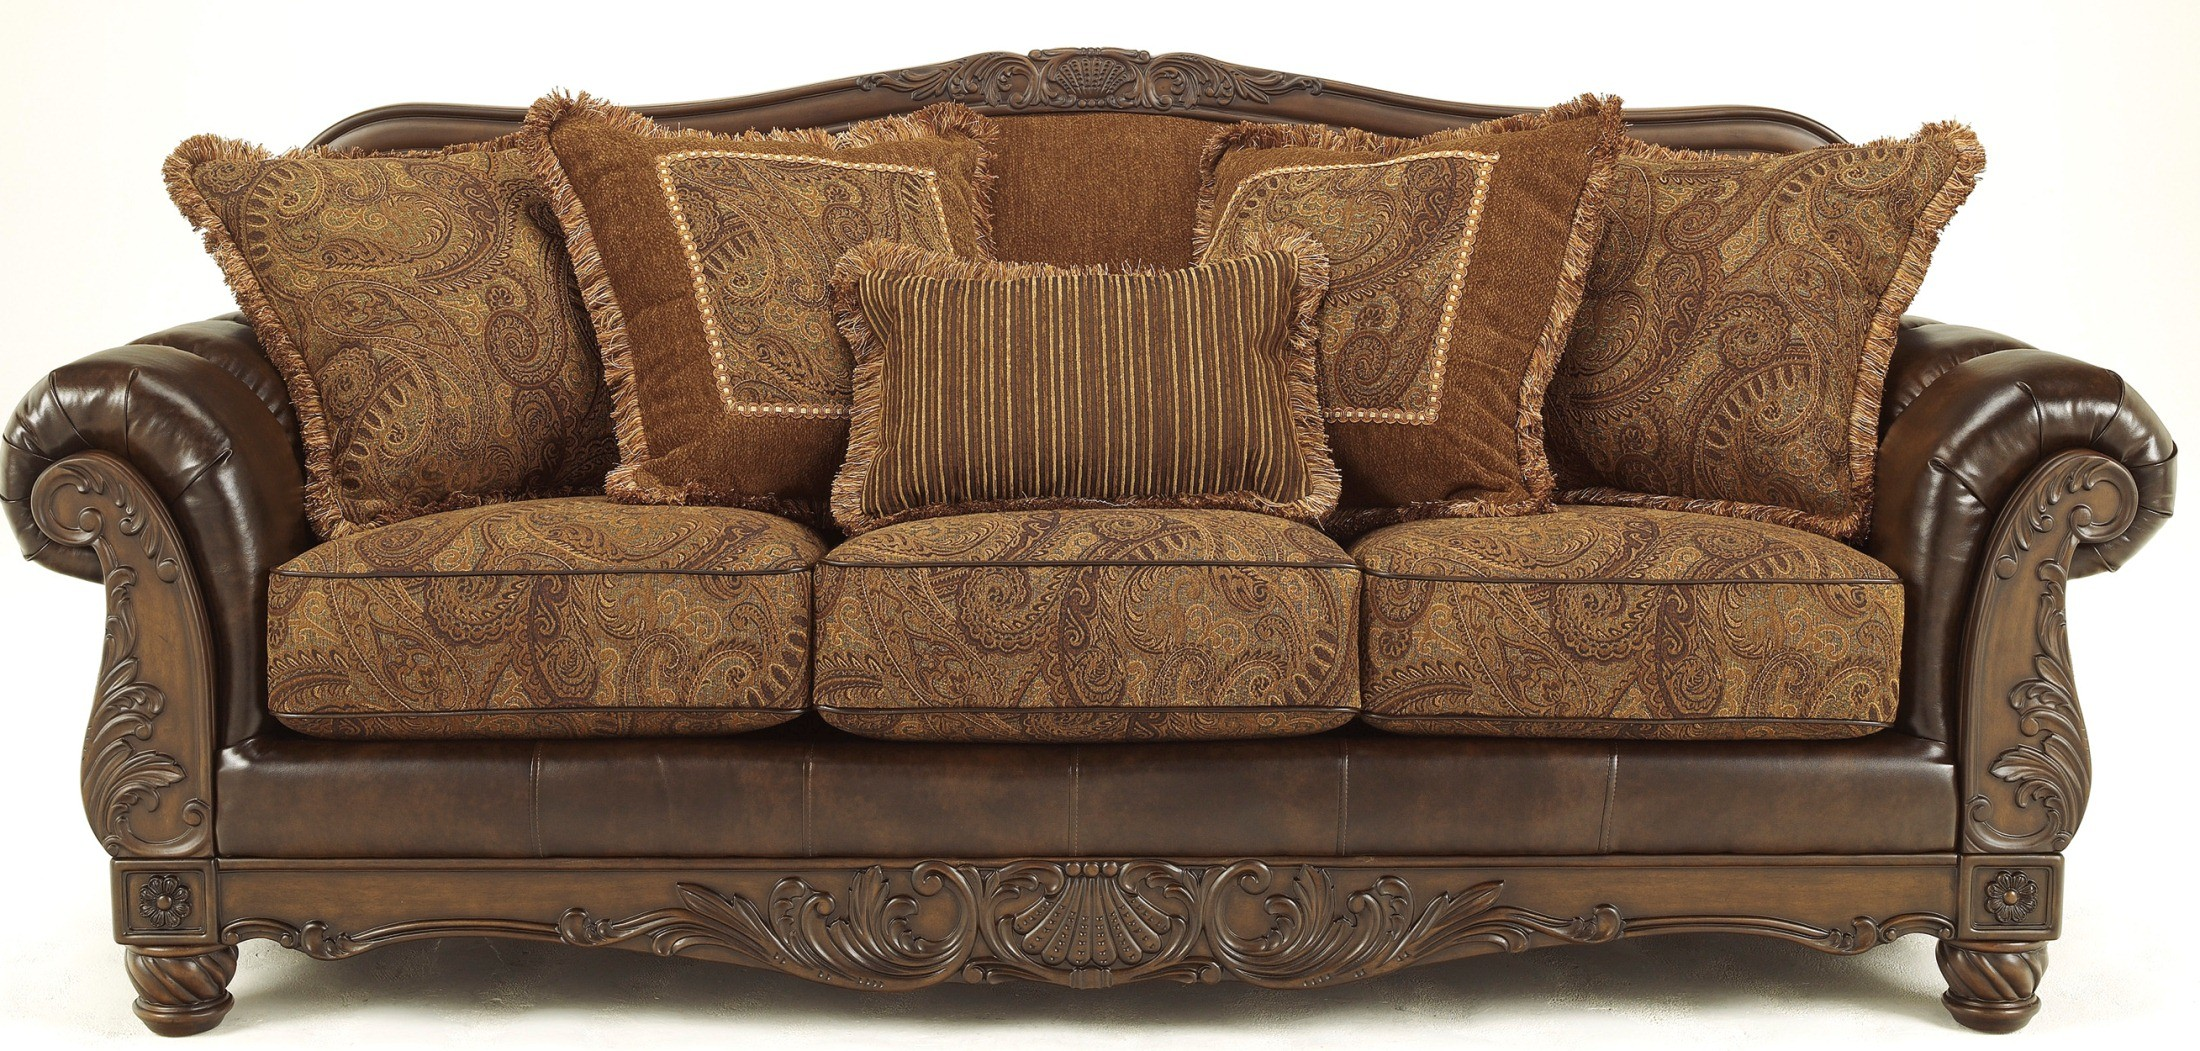 durablend sofa bed with removable covers uk fresco antique living room set from ashley ...